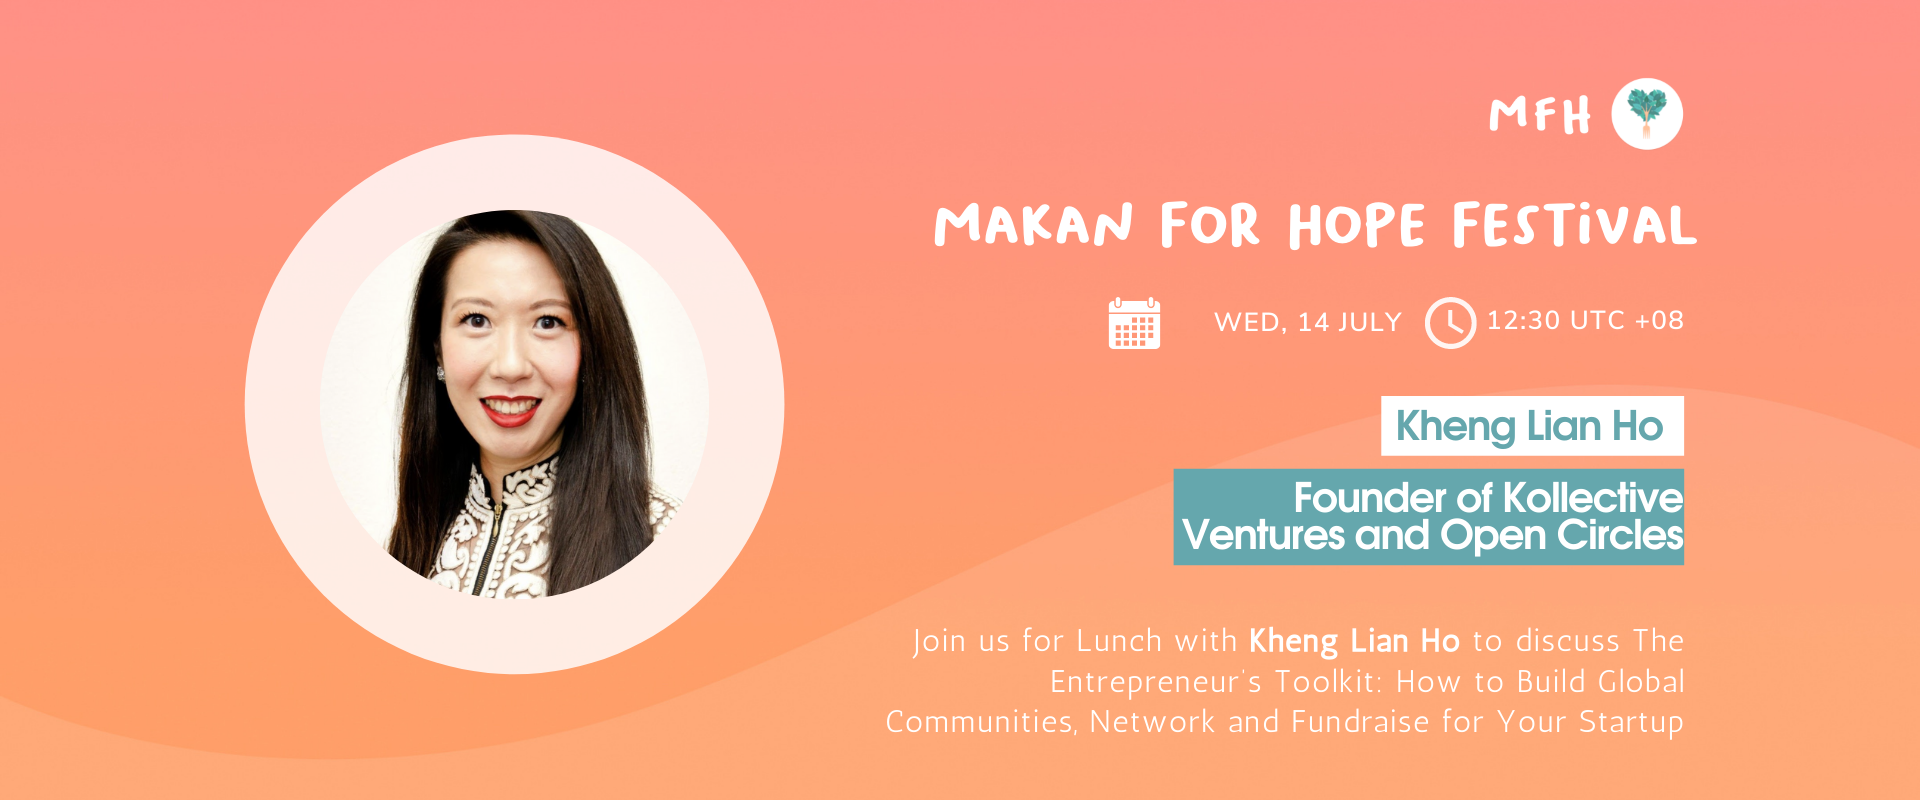 Kheng Lian Ho - The Entrepreneur's Toolkit: How to Build Global Communities, Network and Fundraise for Your Startup